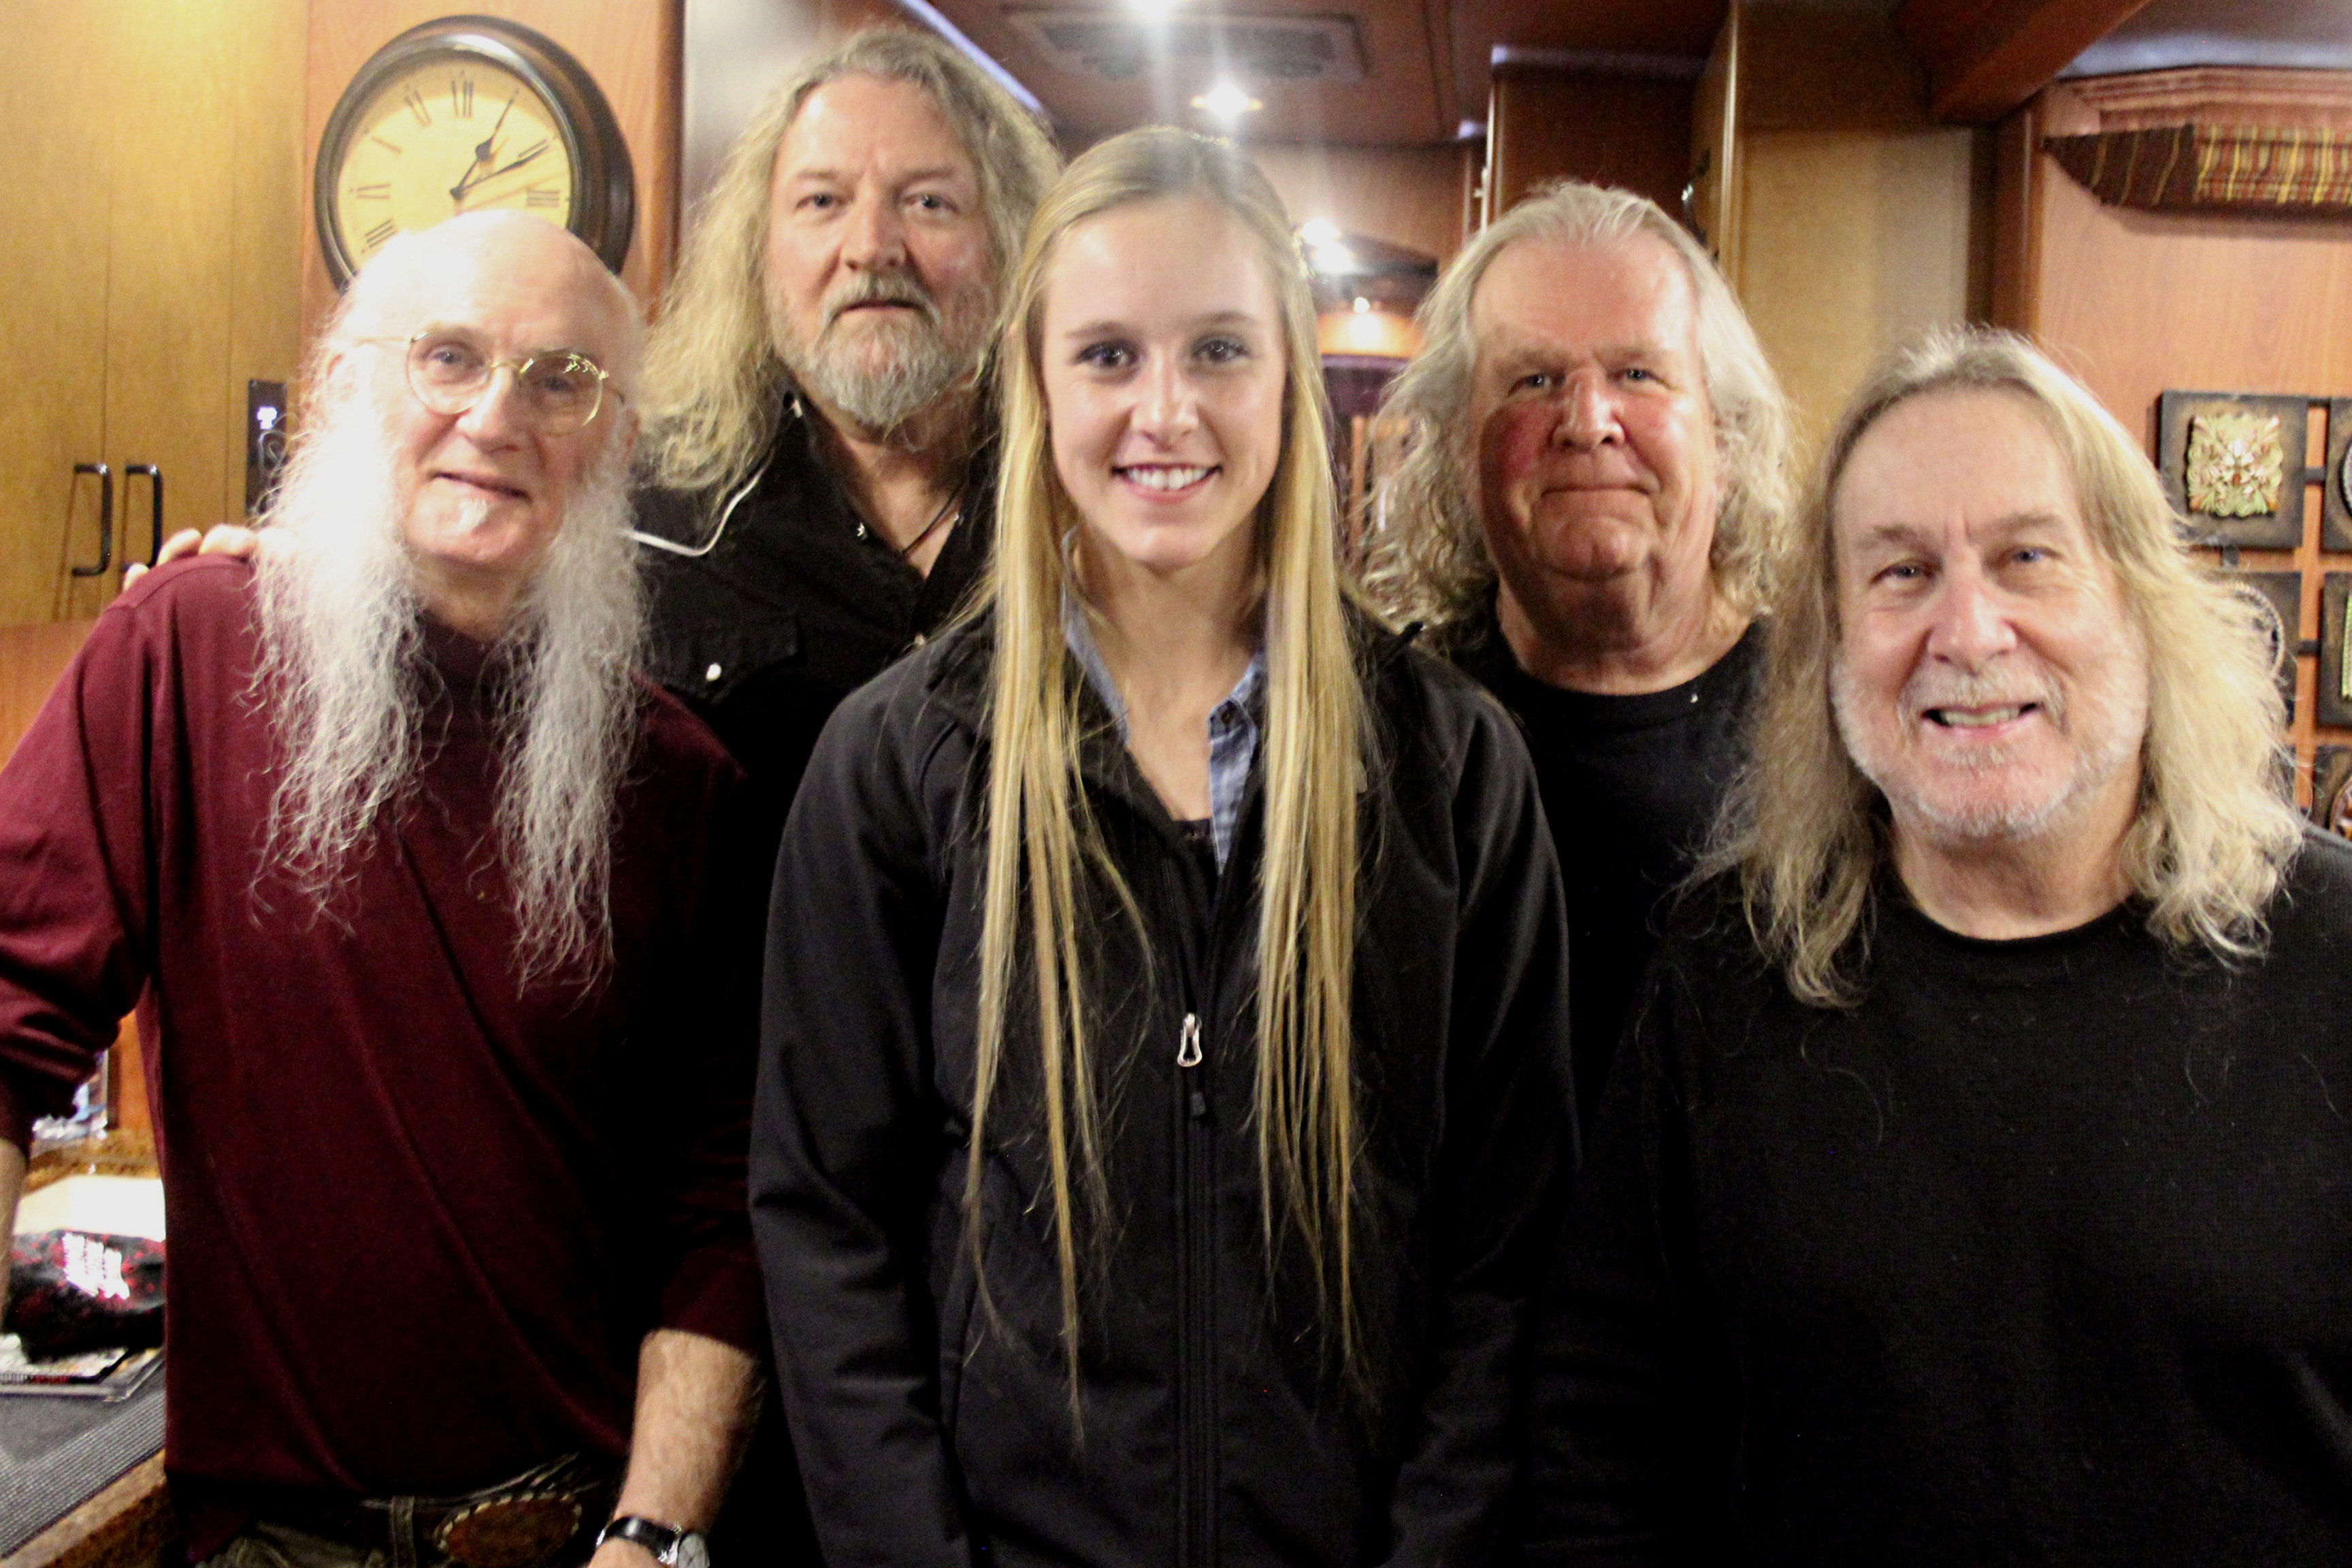 Kenzie and The Kentucky Headhunters